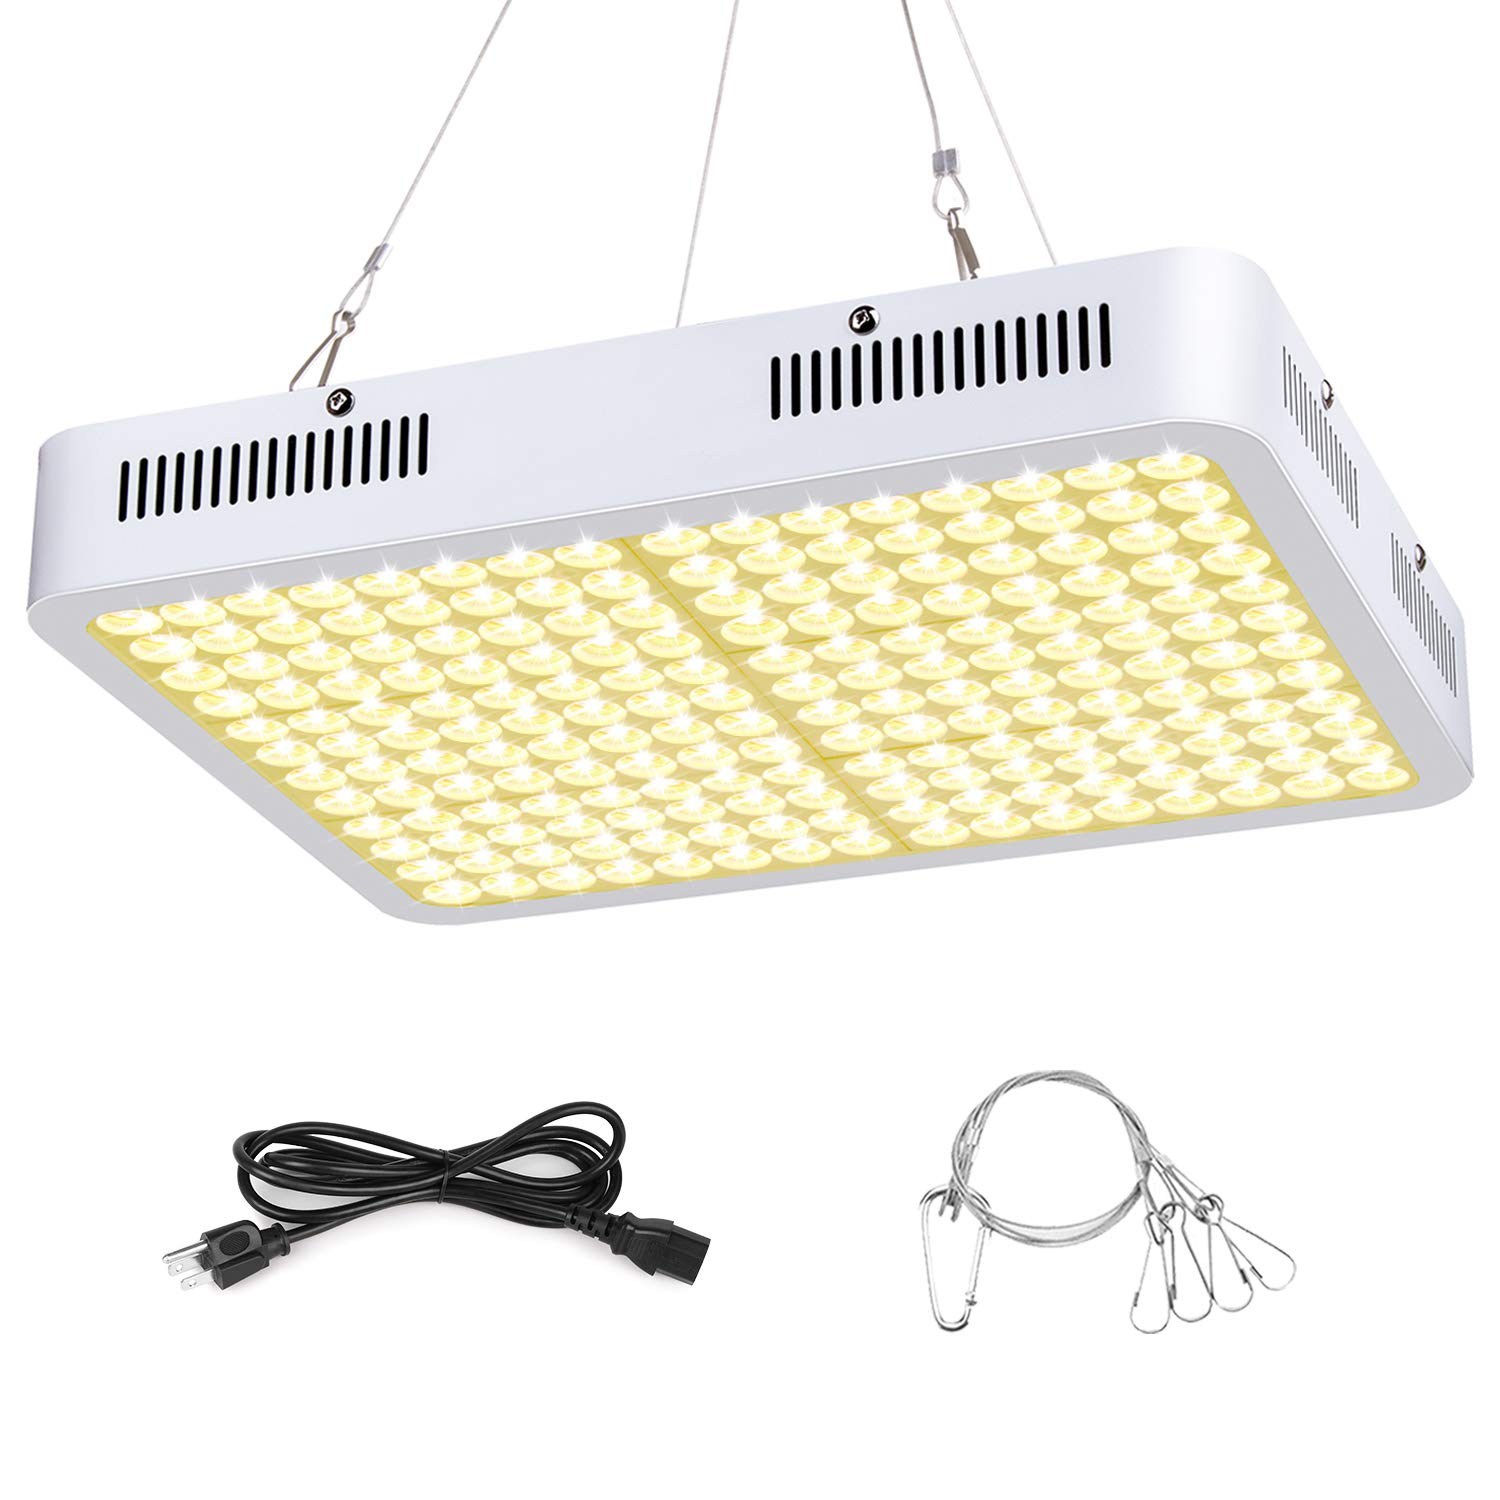 LED Grow Light, Roleadro 3500k Sunlike Plant Light 1200W Full Spectrum Dual-Chip with ON/Off Switch and Daisy Chain for Indoor Plants for Seedling, Succulents,Micro Greens, Clones, Vegetative, Flower